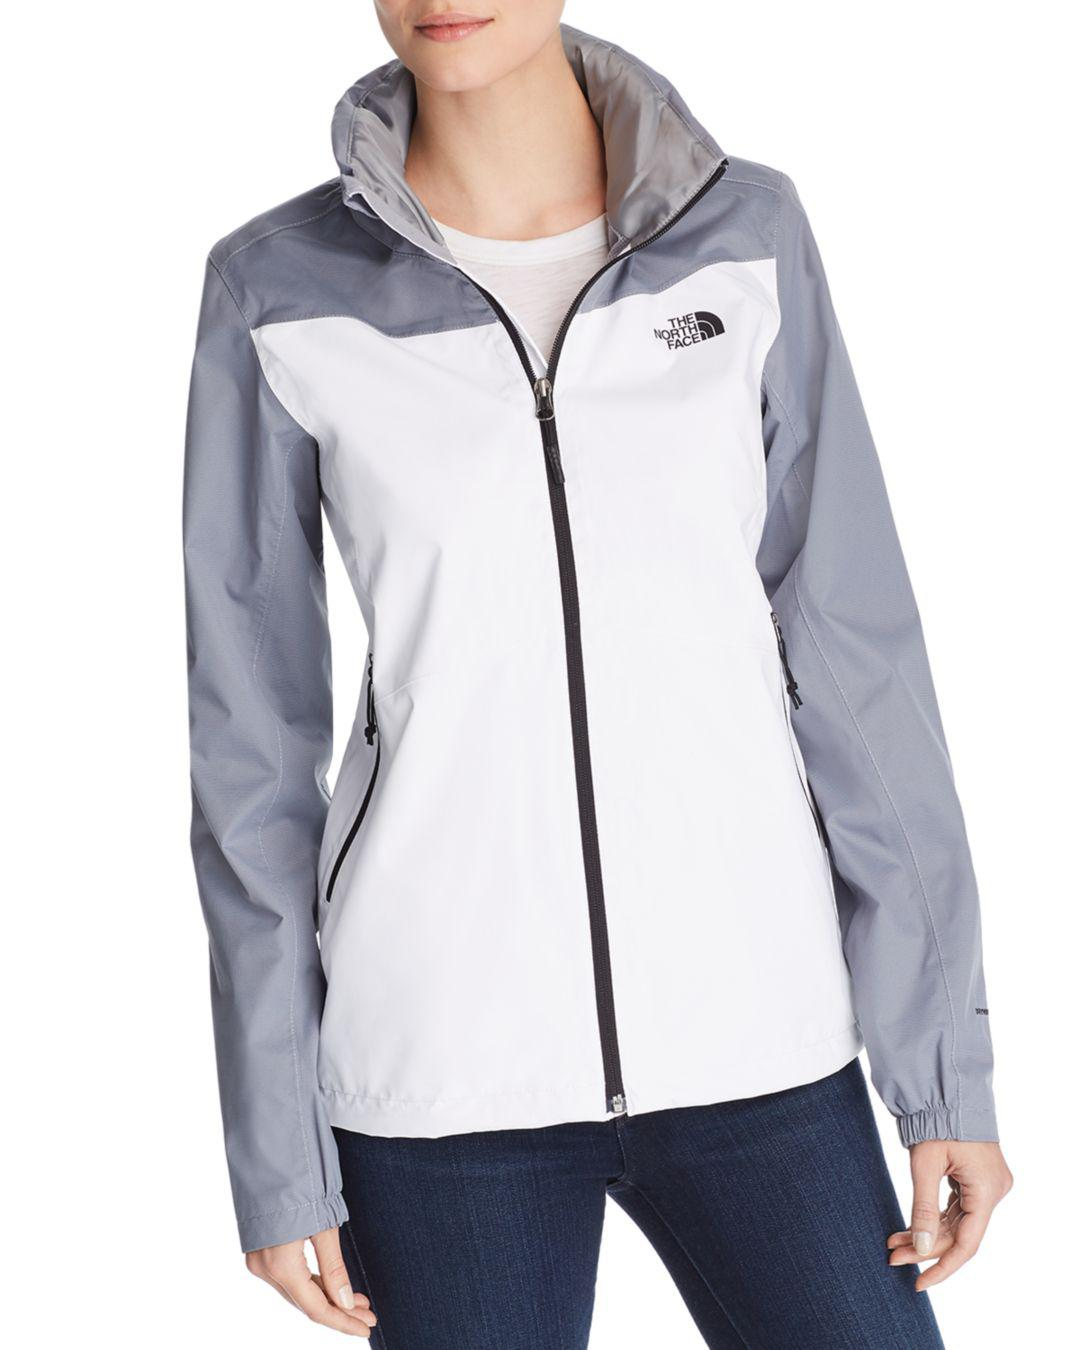 e4b6549dd Lyst - The North Face Resolve Plus Jacket in White